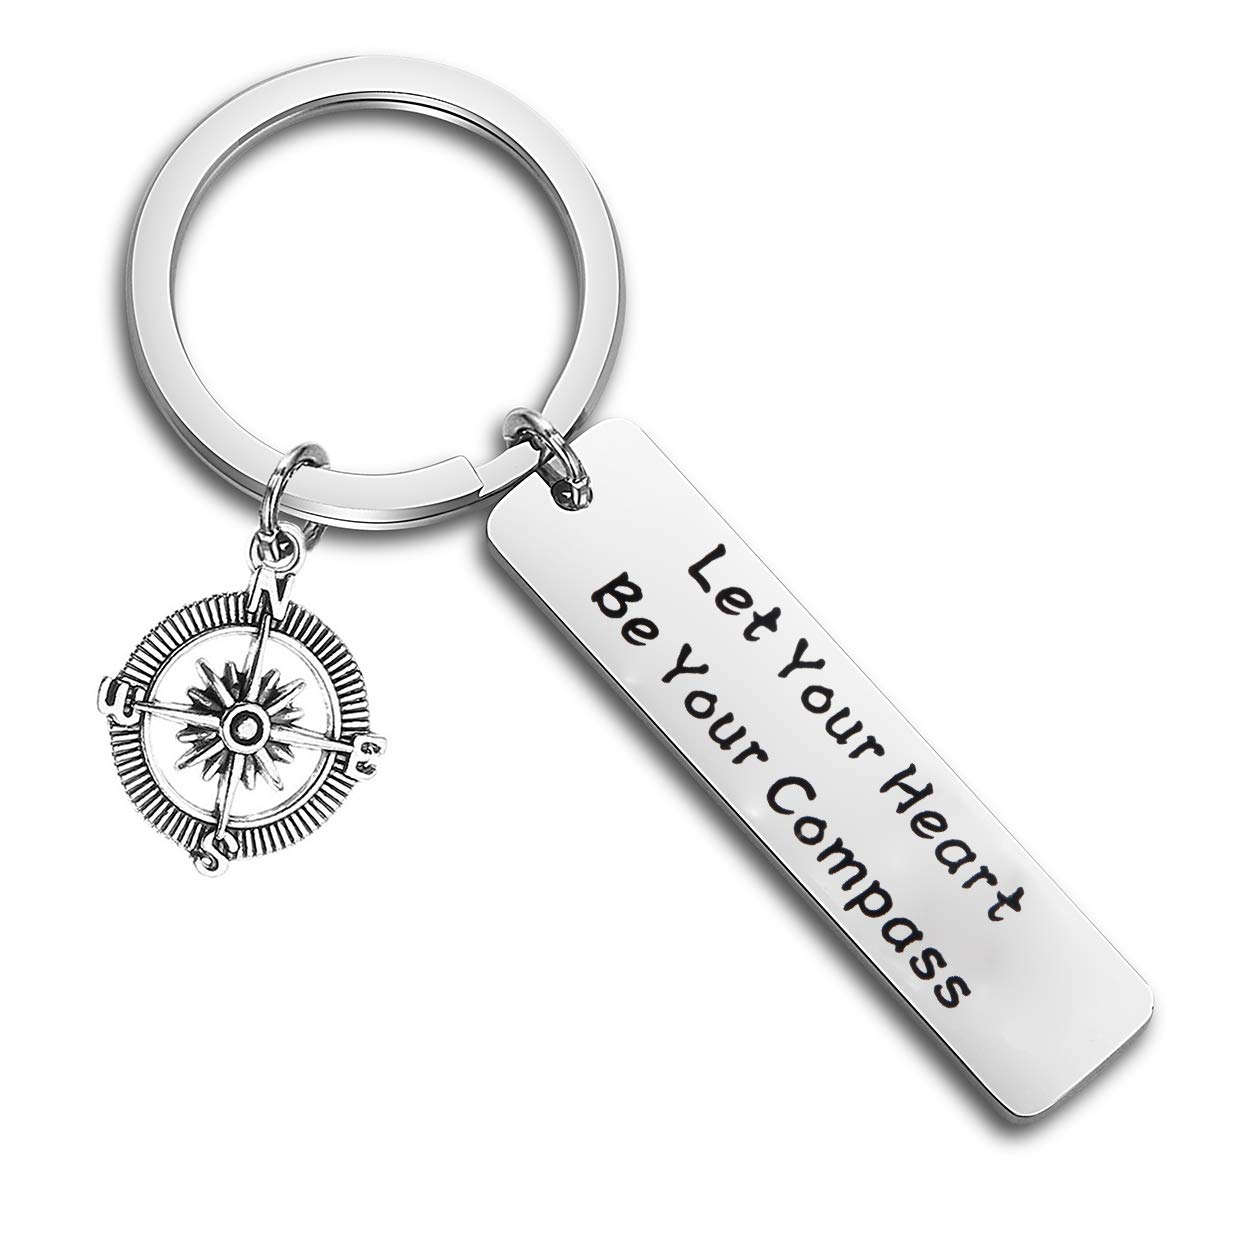 QIIER Let Your Heart Be Your Compass Inspirational Keychain Graduation Gifts Going Away Gifts for Best Friend Coworker Colleague (Silver)